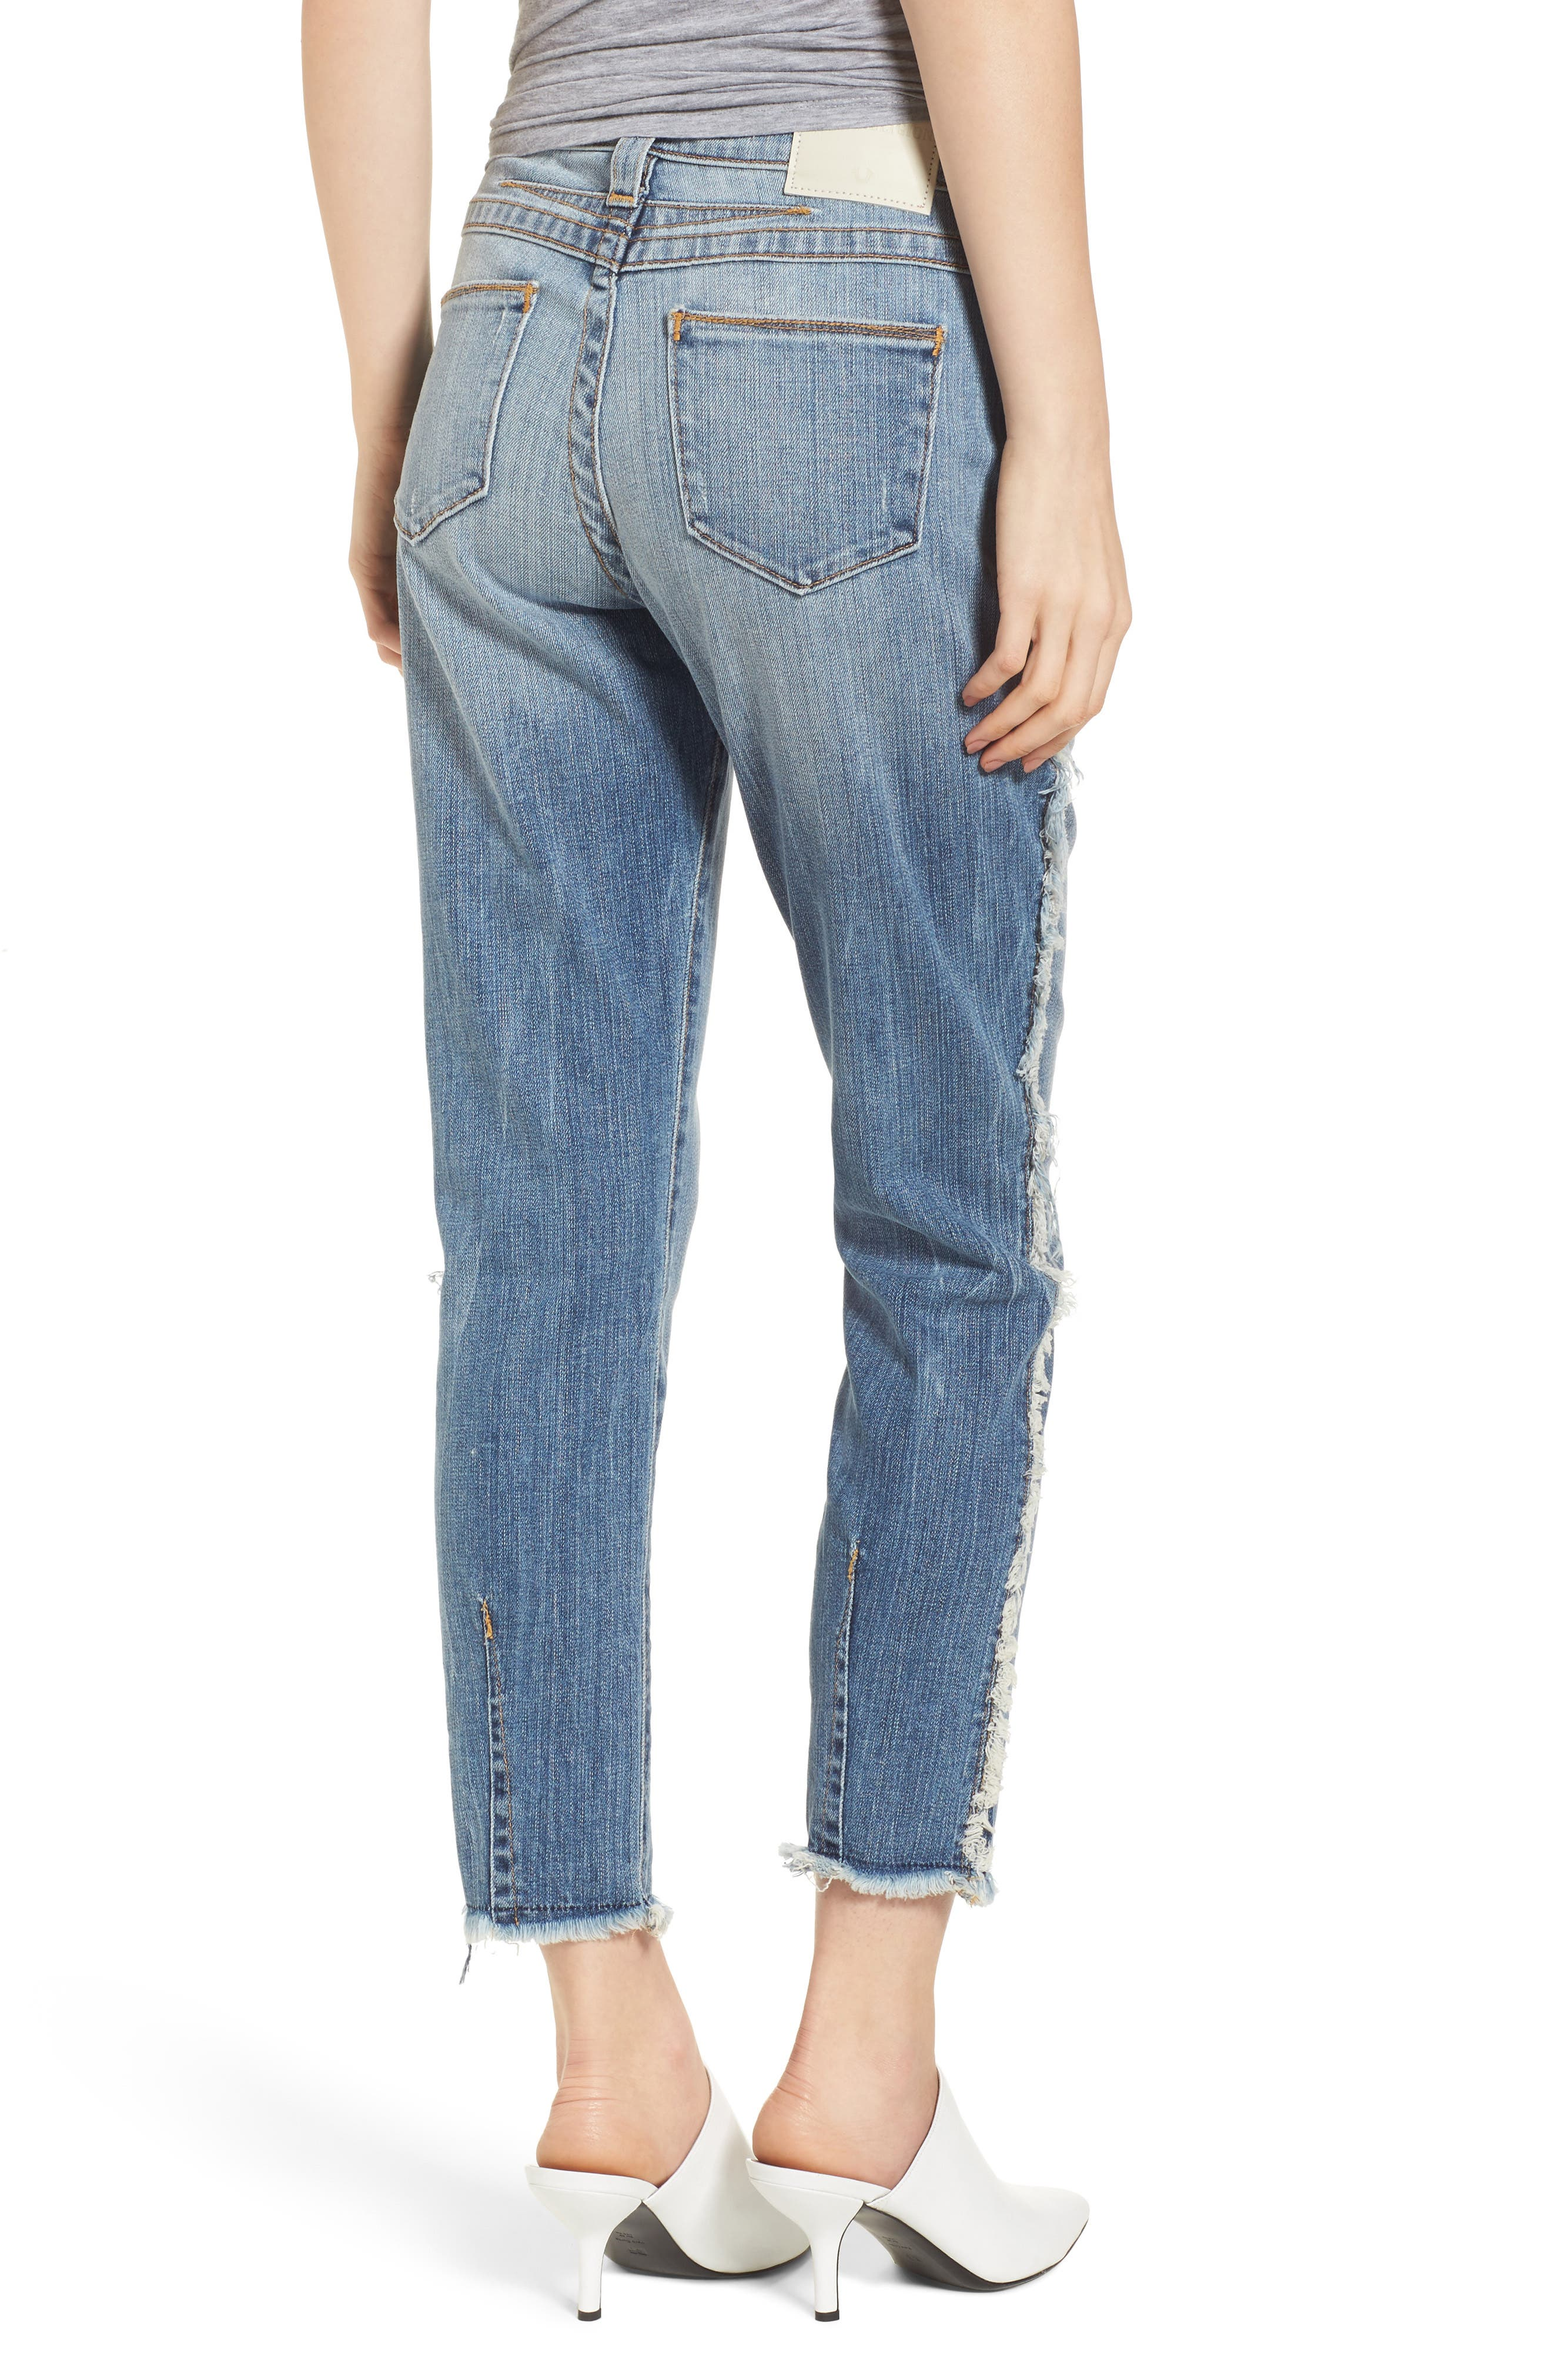 Colette High Waist Tapered Skinny Jeans,                             Alternate thumbnail 2, color,                             401